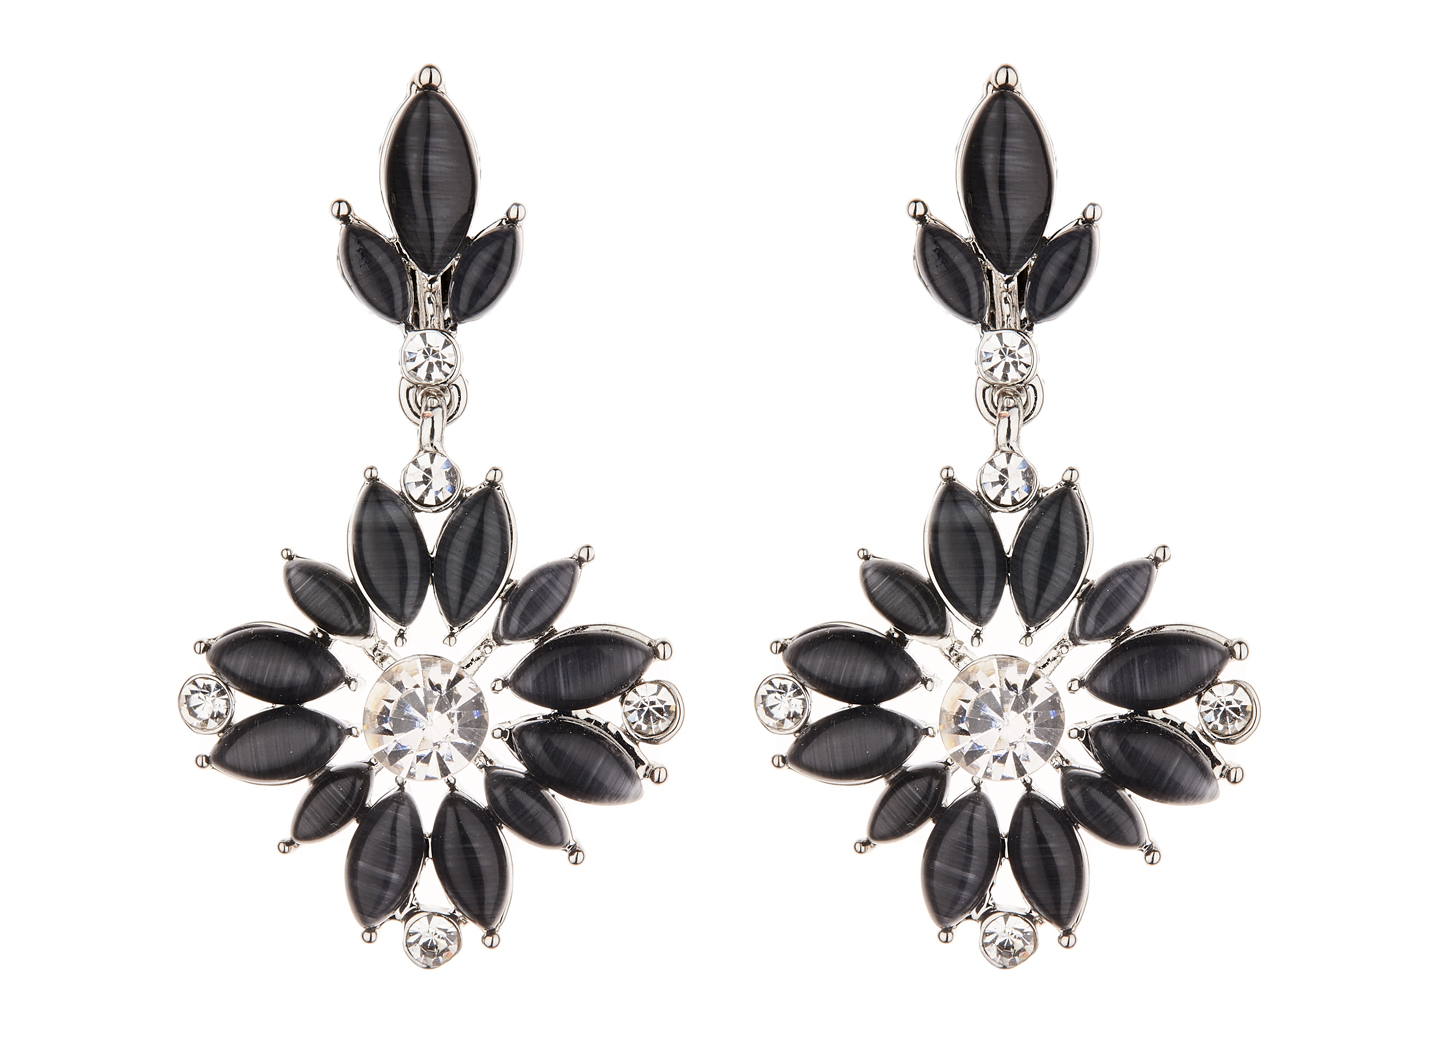 Clip On Earrings - Clover B - silver dangle earring with black and crystals